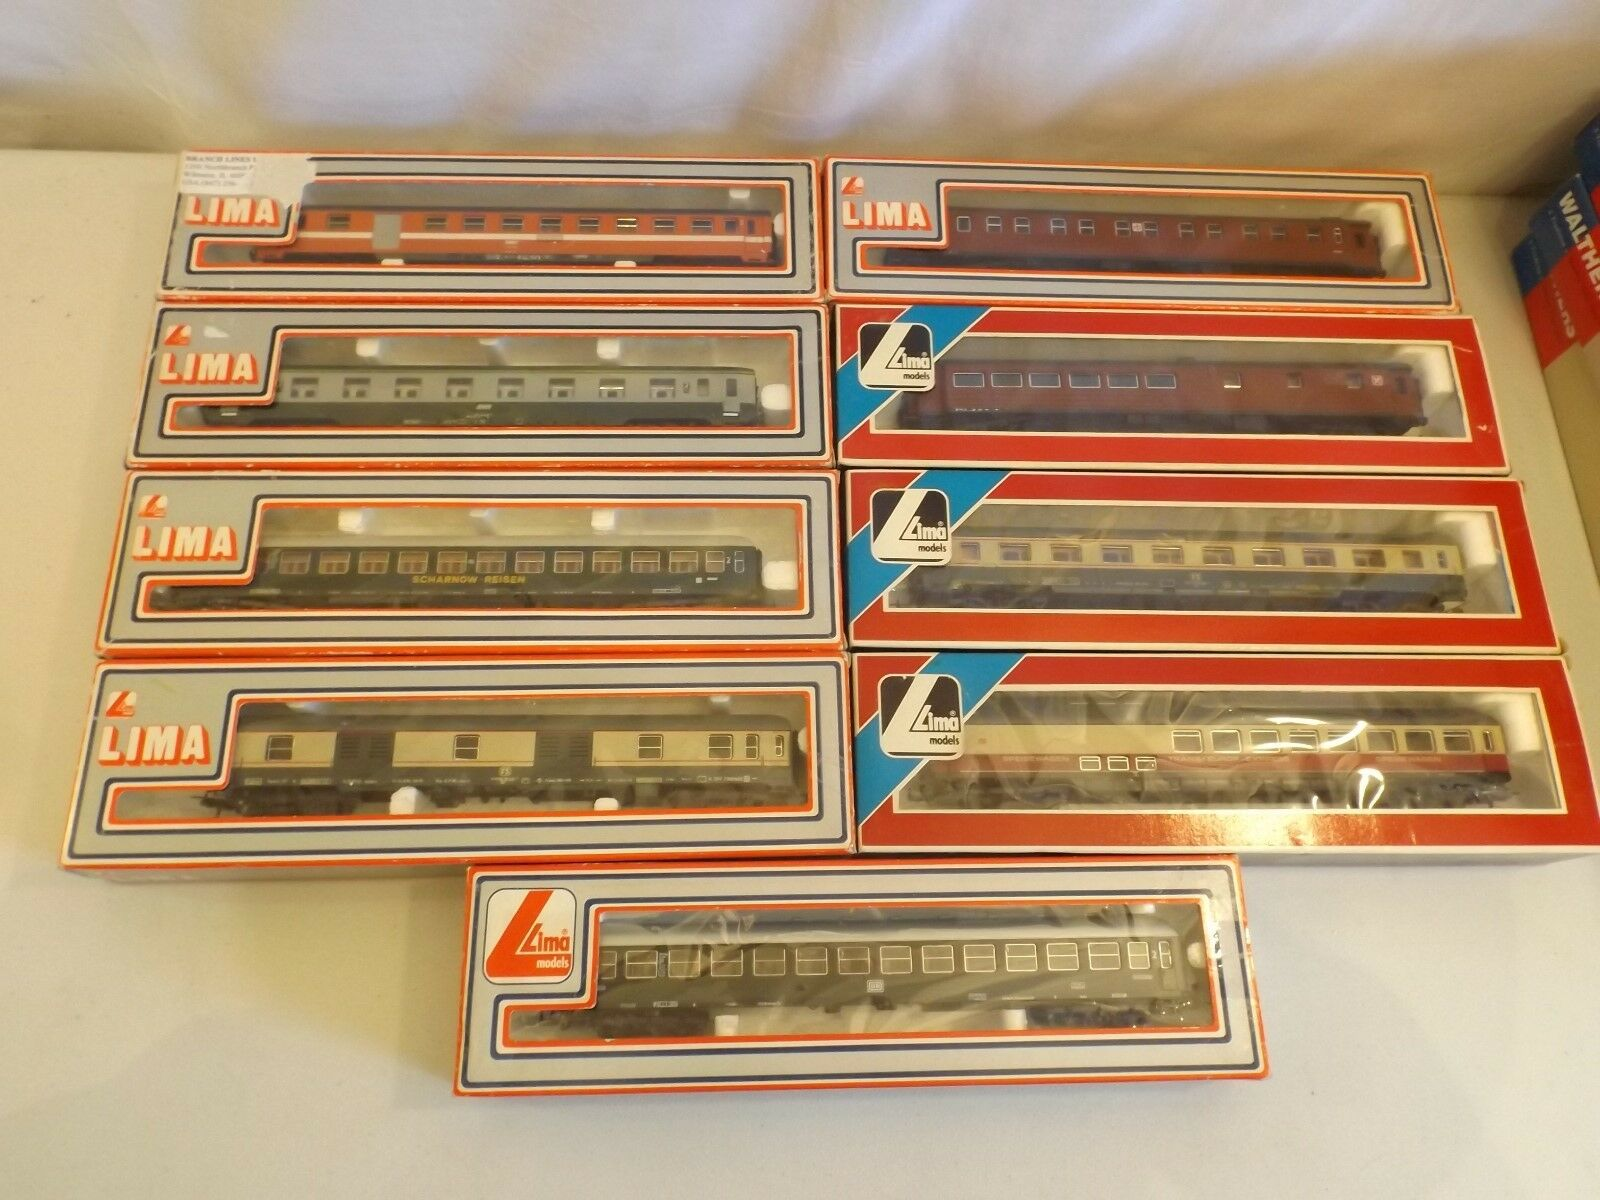 HO lot of Lima passenger cars